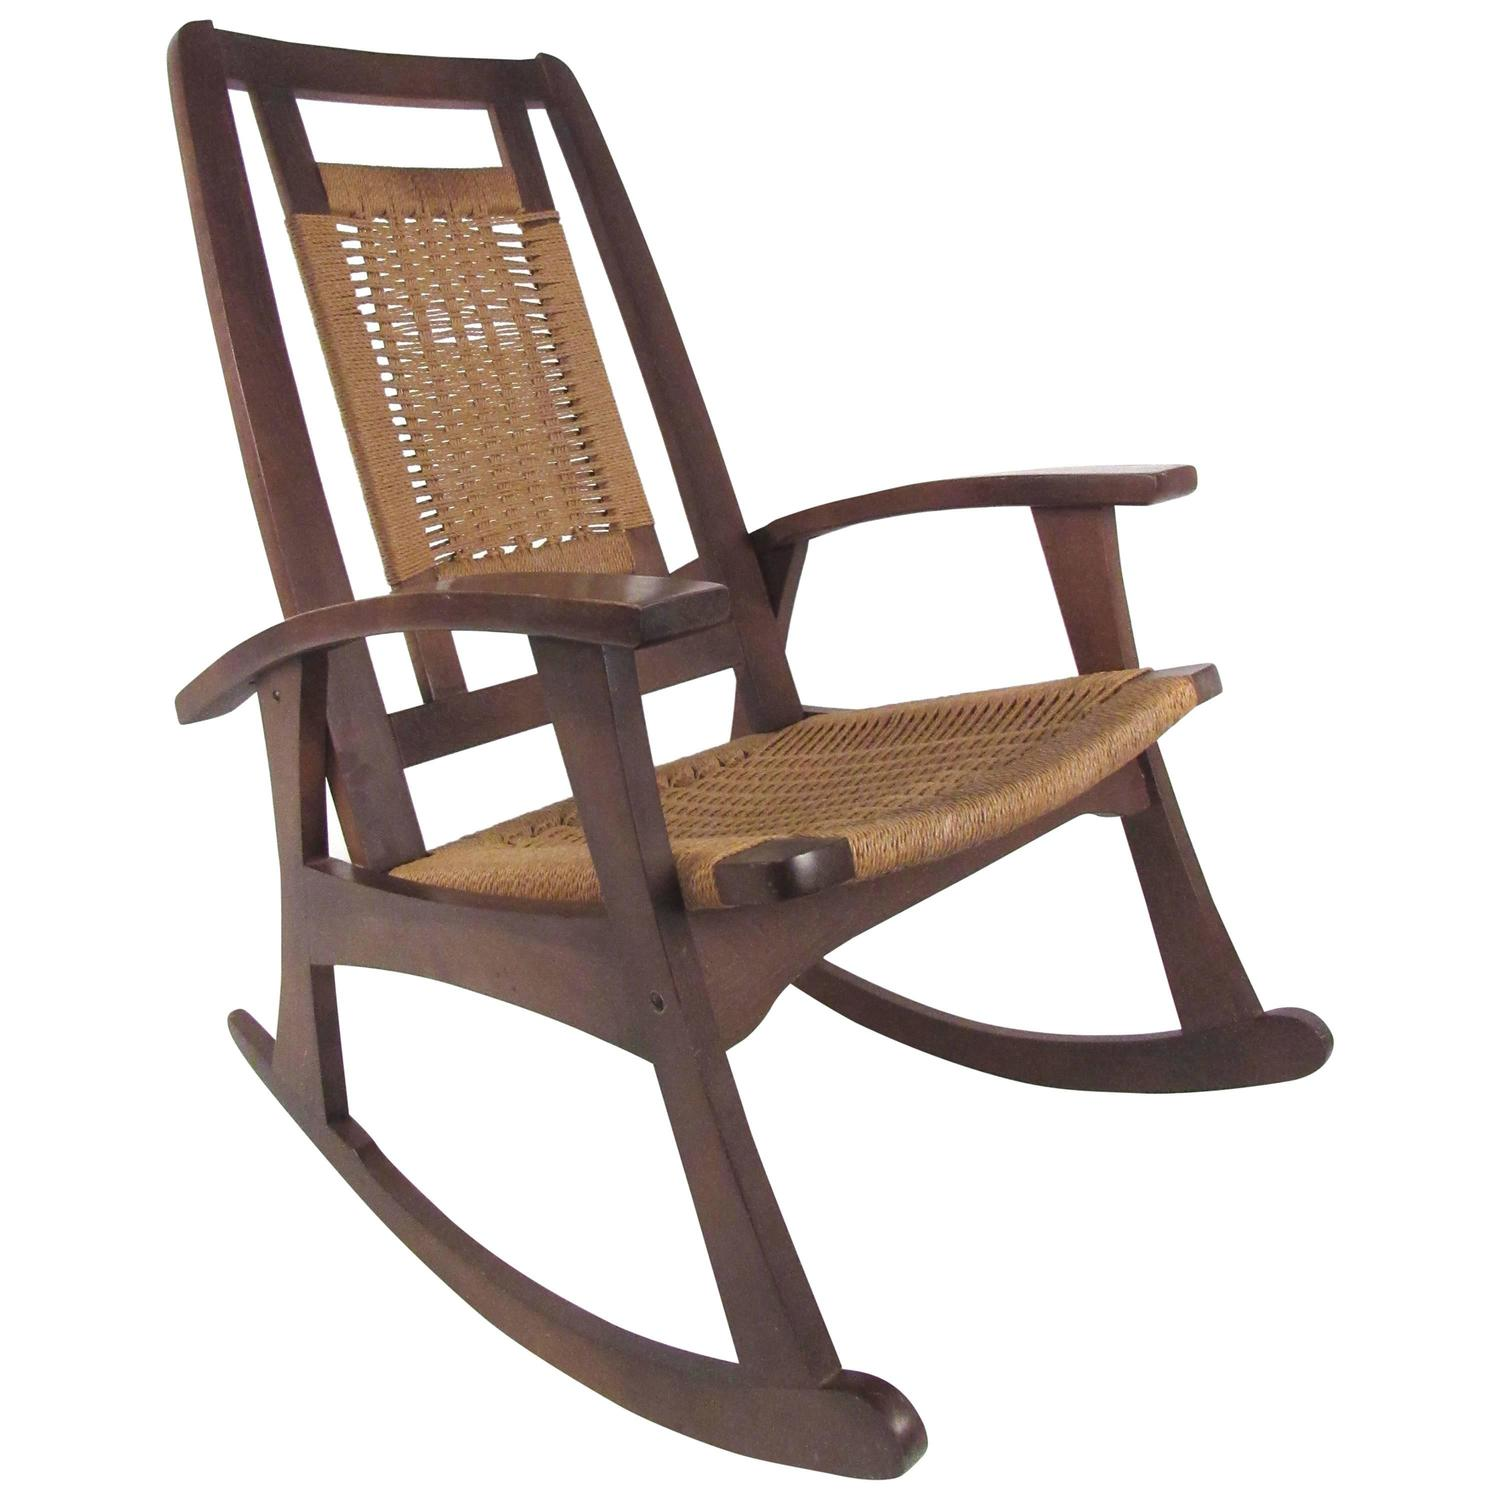 Mid Century Rush Seat Rocking Chair For Sale at 1stdibs